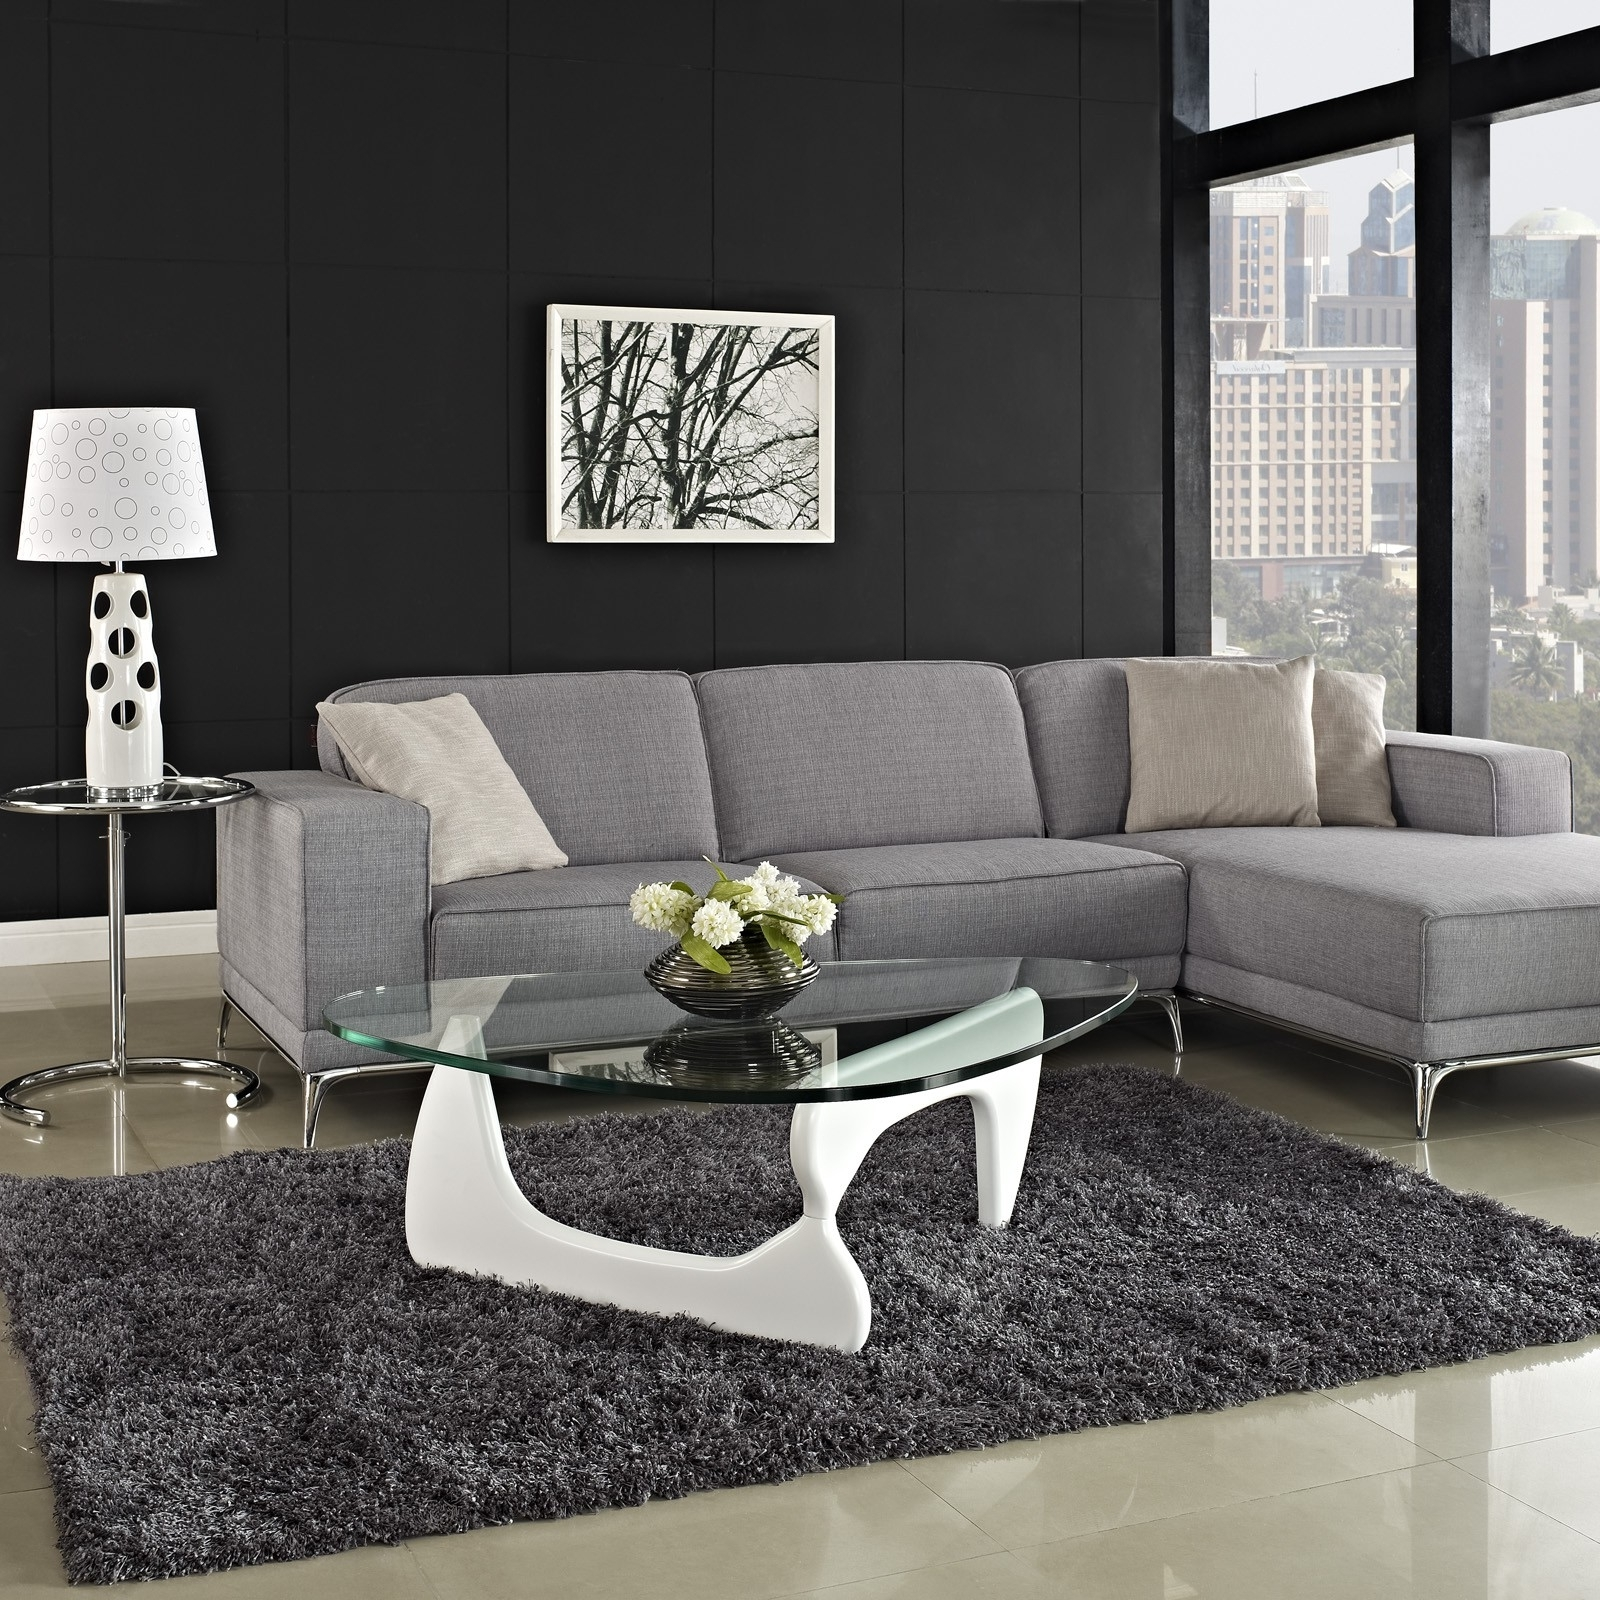 L Shaped Grey Sectional Sofa And White Cushions On Chrome Base Throughout Latest Coffee Tables For Sectional Sofa With Chaise (View 5 of 15)